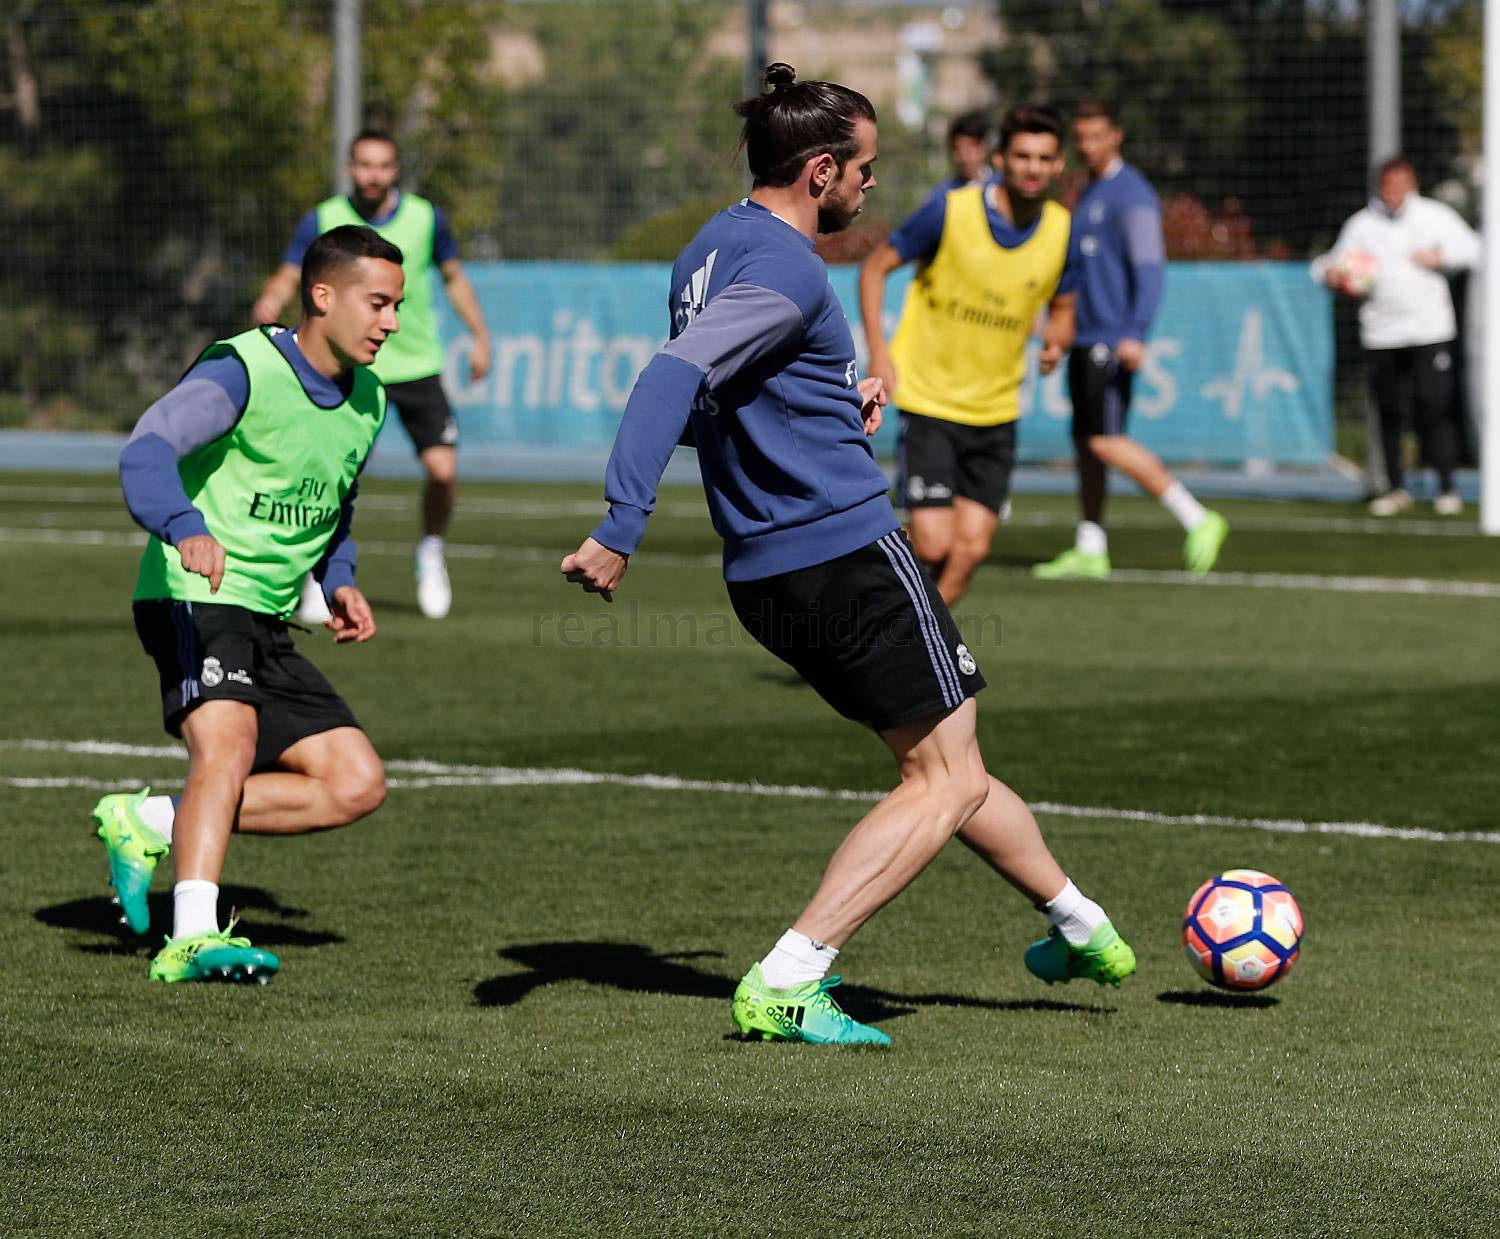 Real Madrid - Entrenamiento del Real Madrid - 04-04-2017